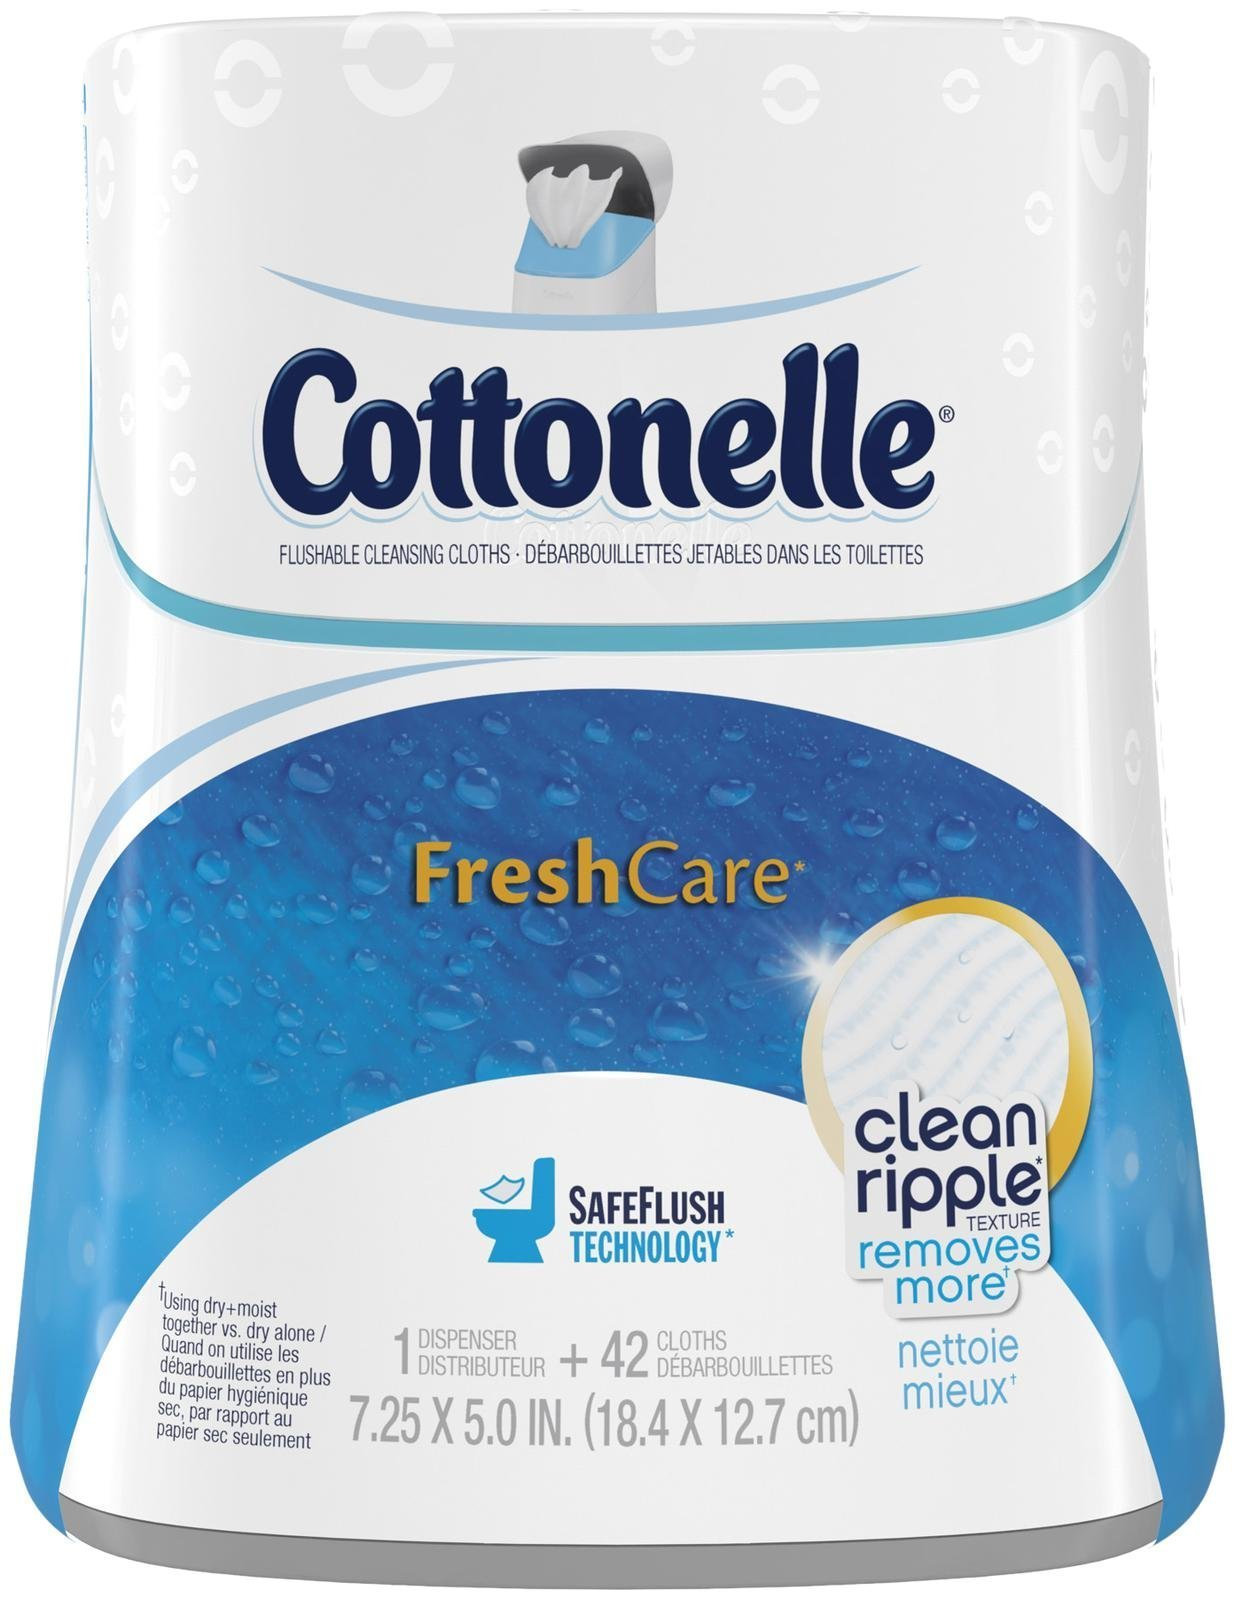 Cottonelle Fresh Care Moist Wipes Upright Dispenser + Flushable Wipes-42 ct by Cottonelle